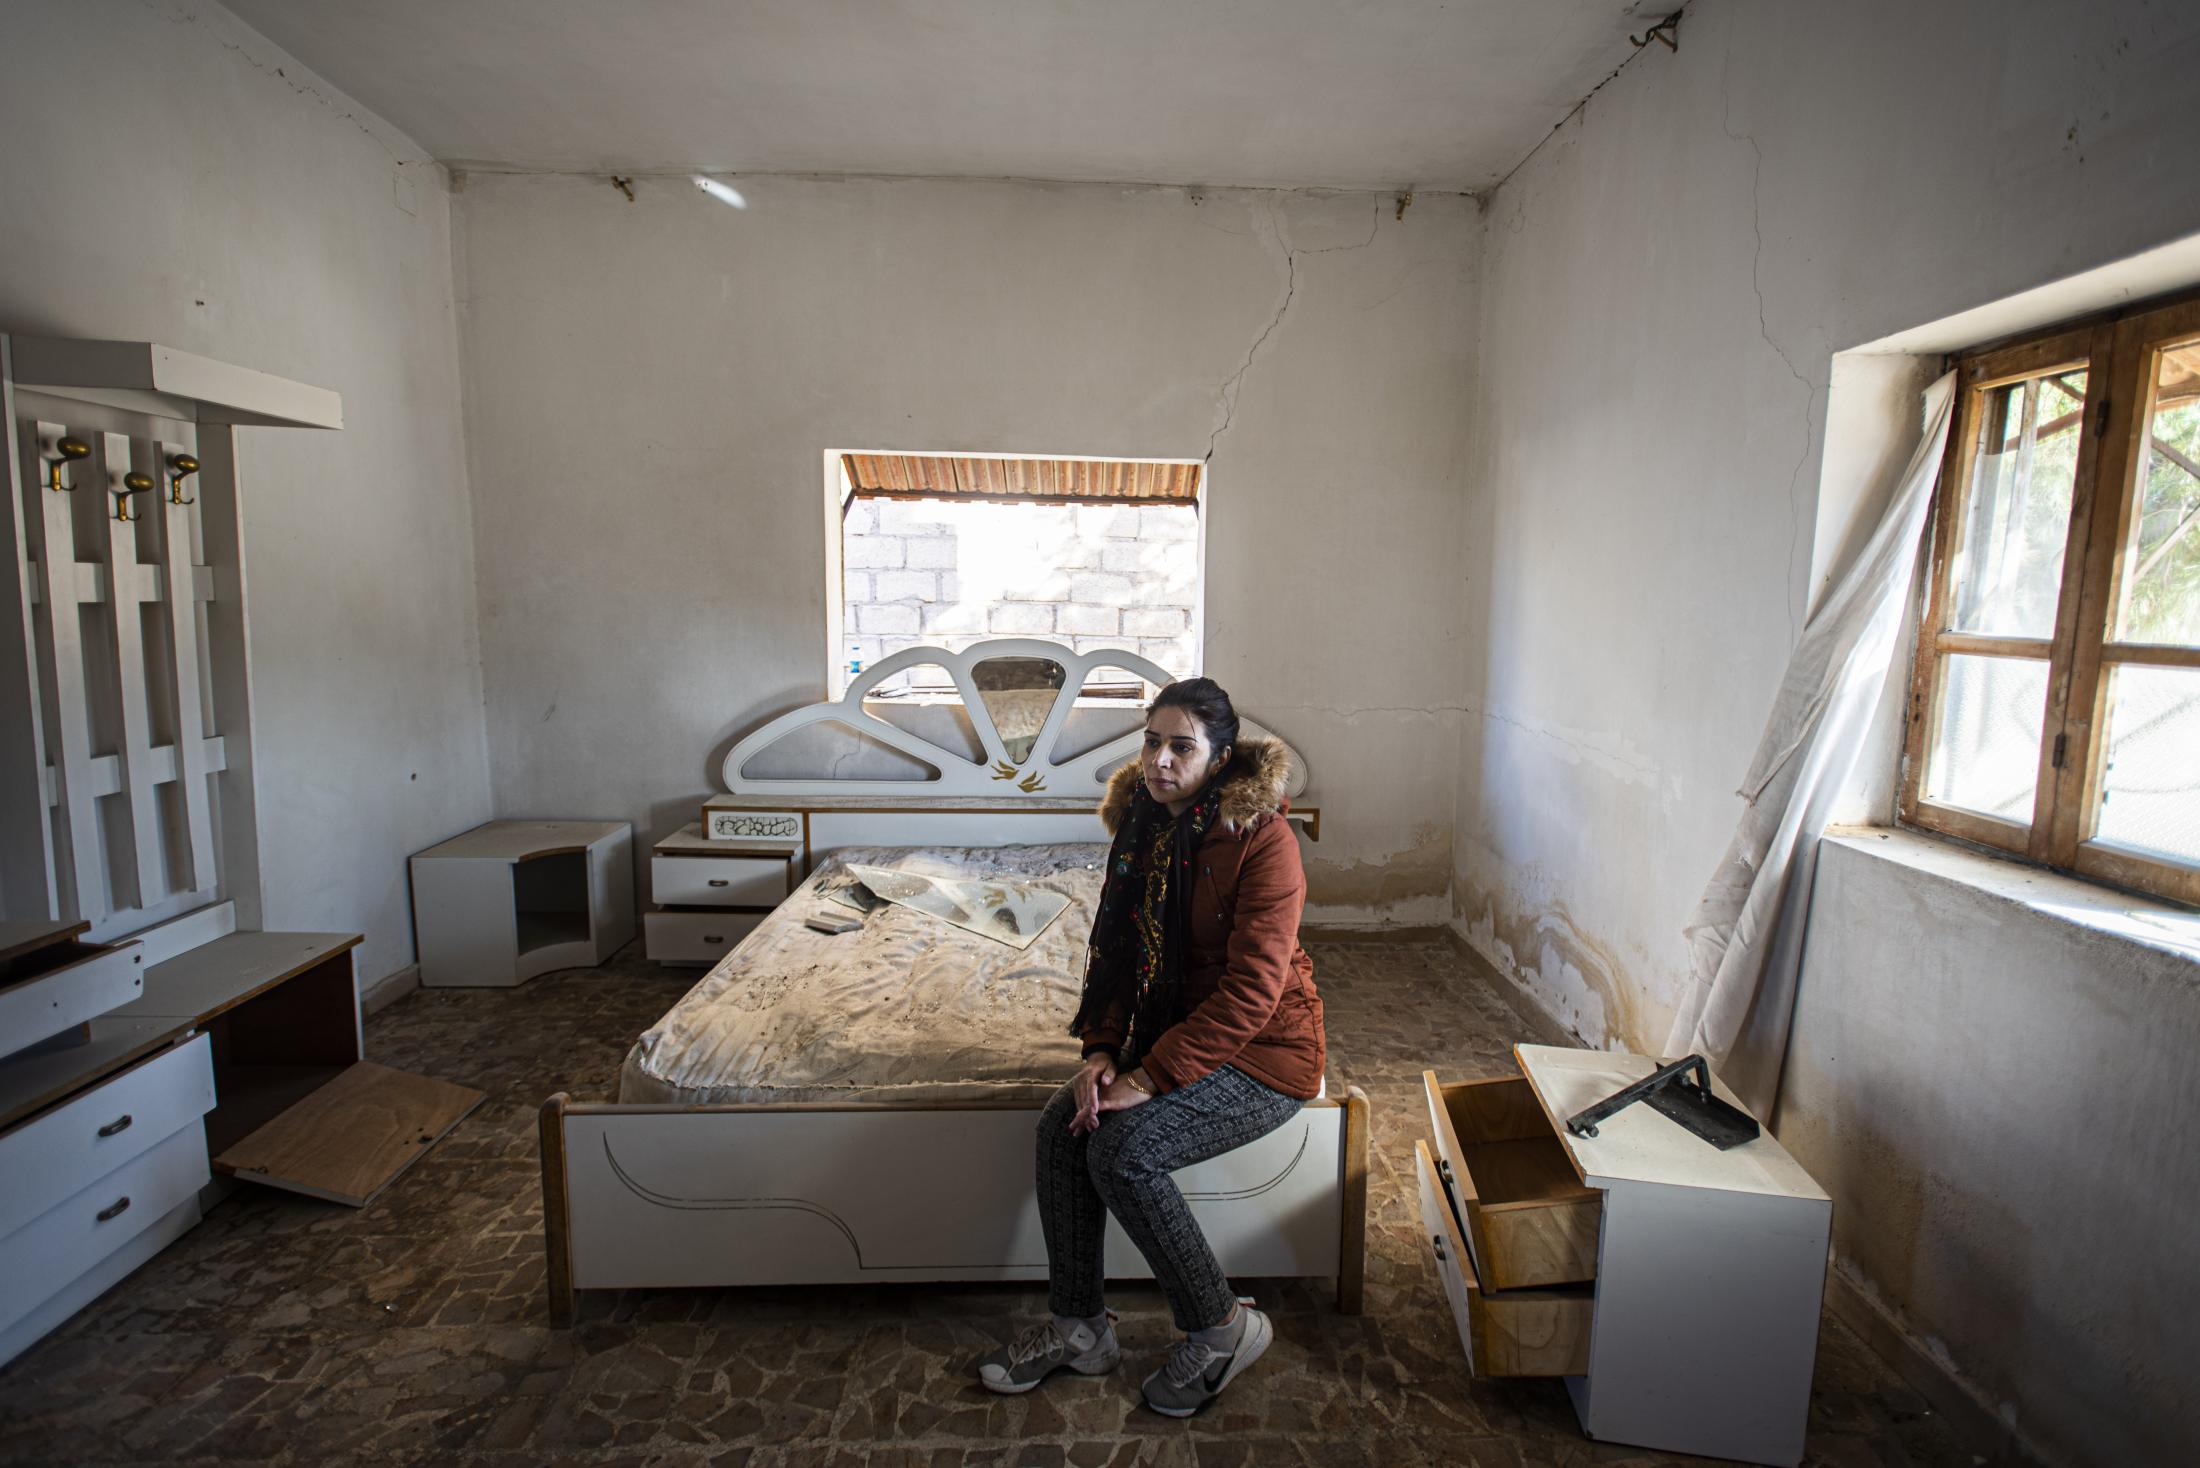 Yihan, a Serekaniye refugee, inside a destroyed room in a house on the frontline of XXXX .After the withdrawal of US troops from northern Syria in October 2019, Turkey launched an offensive against the predominantly Kurdish areas in the northeast of the country along Islamist forces. Calls for war crimes investigations into the conduct of Ankara-backed militias are mounting ever since. (Andoni Lubaki / Euskal Fondoa)